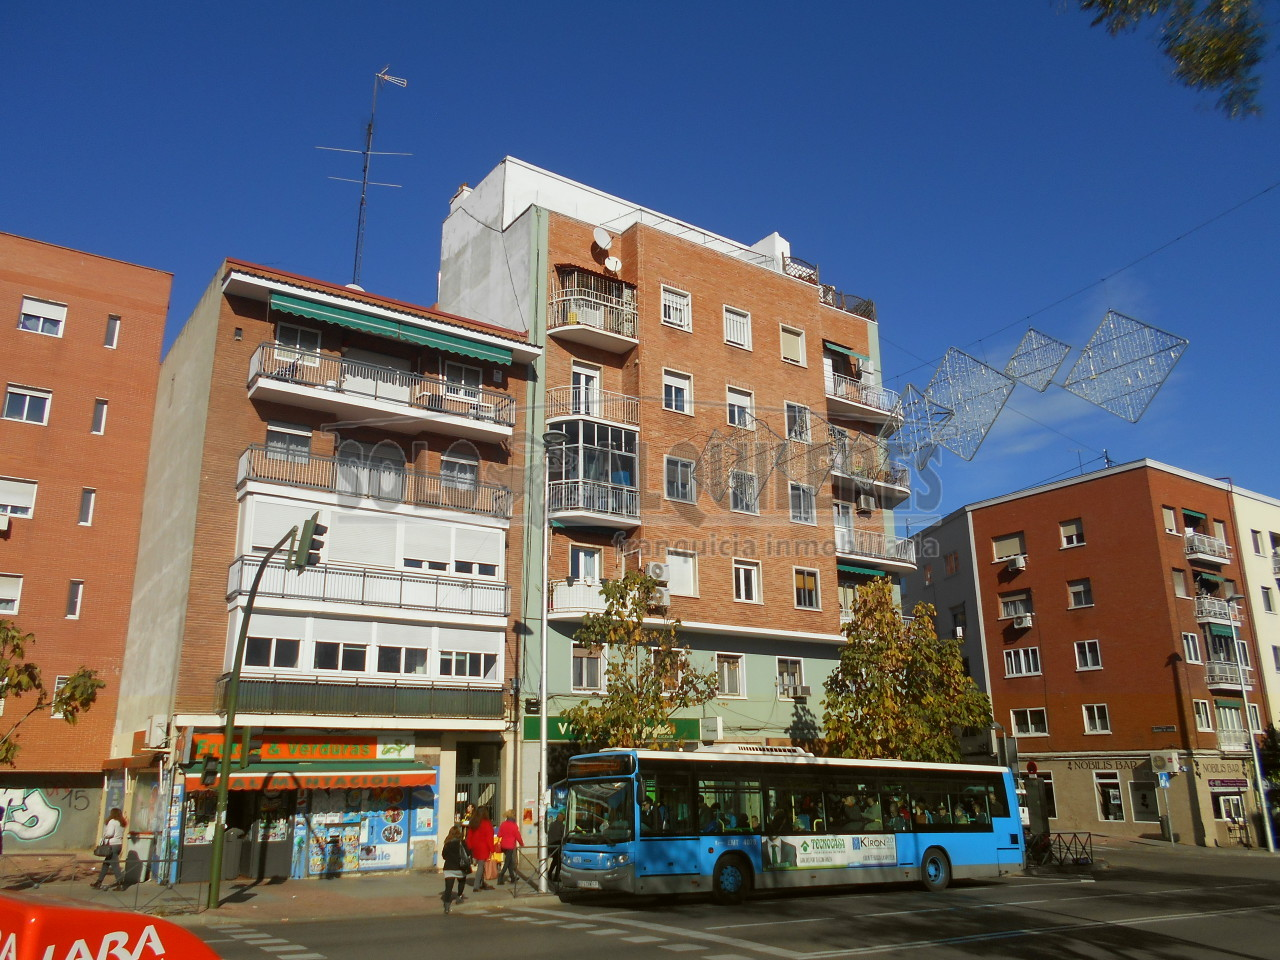 flat-for-rent-in-general-ricardos-madrid-226030902